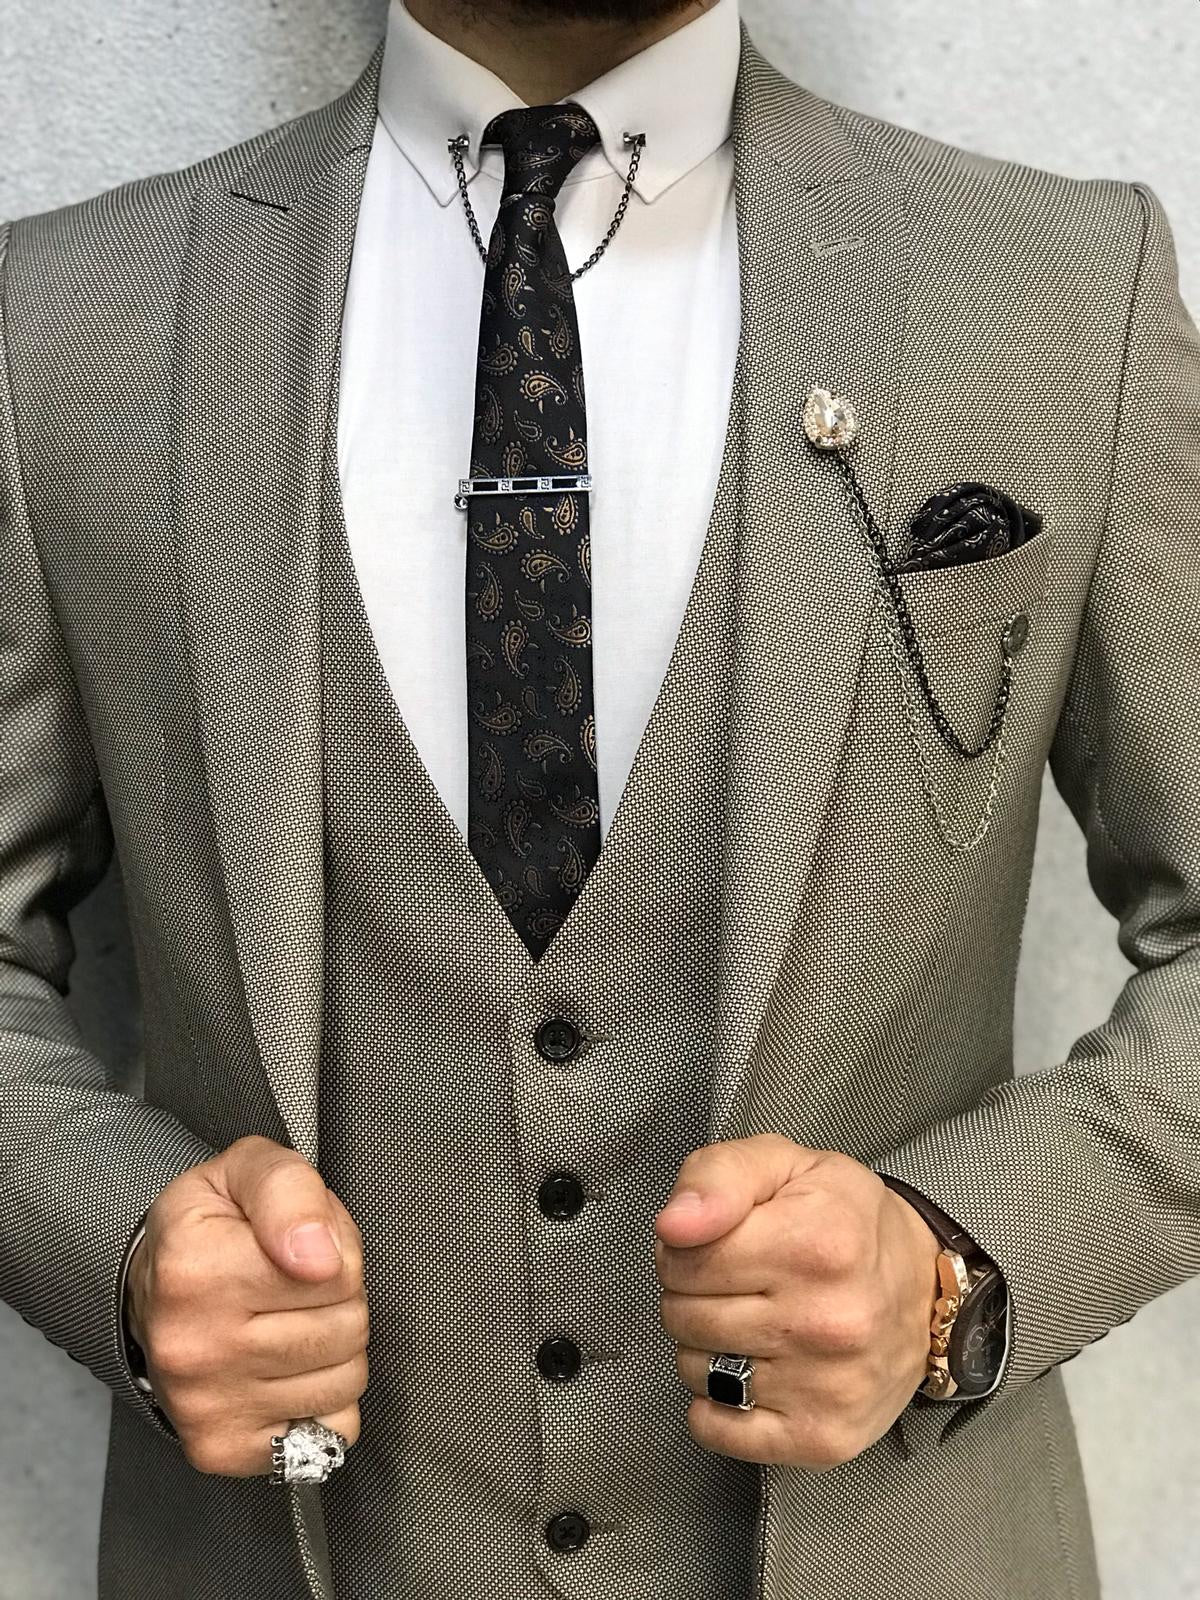 Bernard Dark Cream Slim Suit